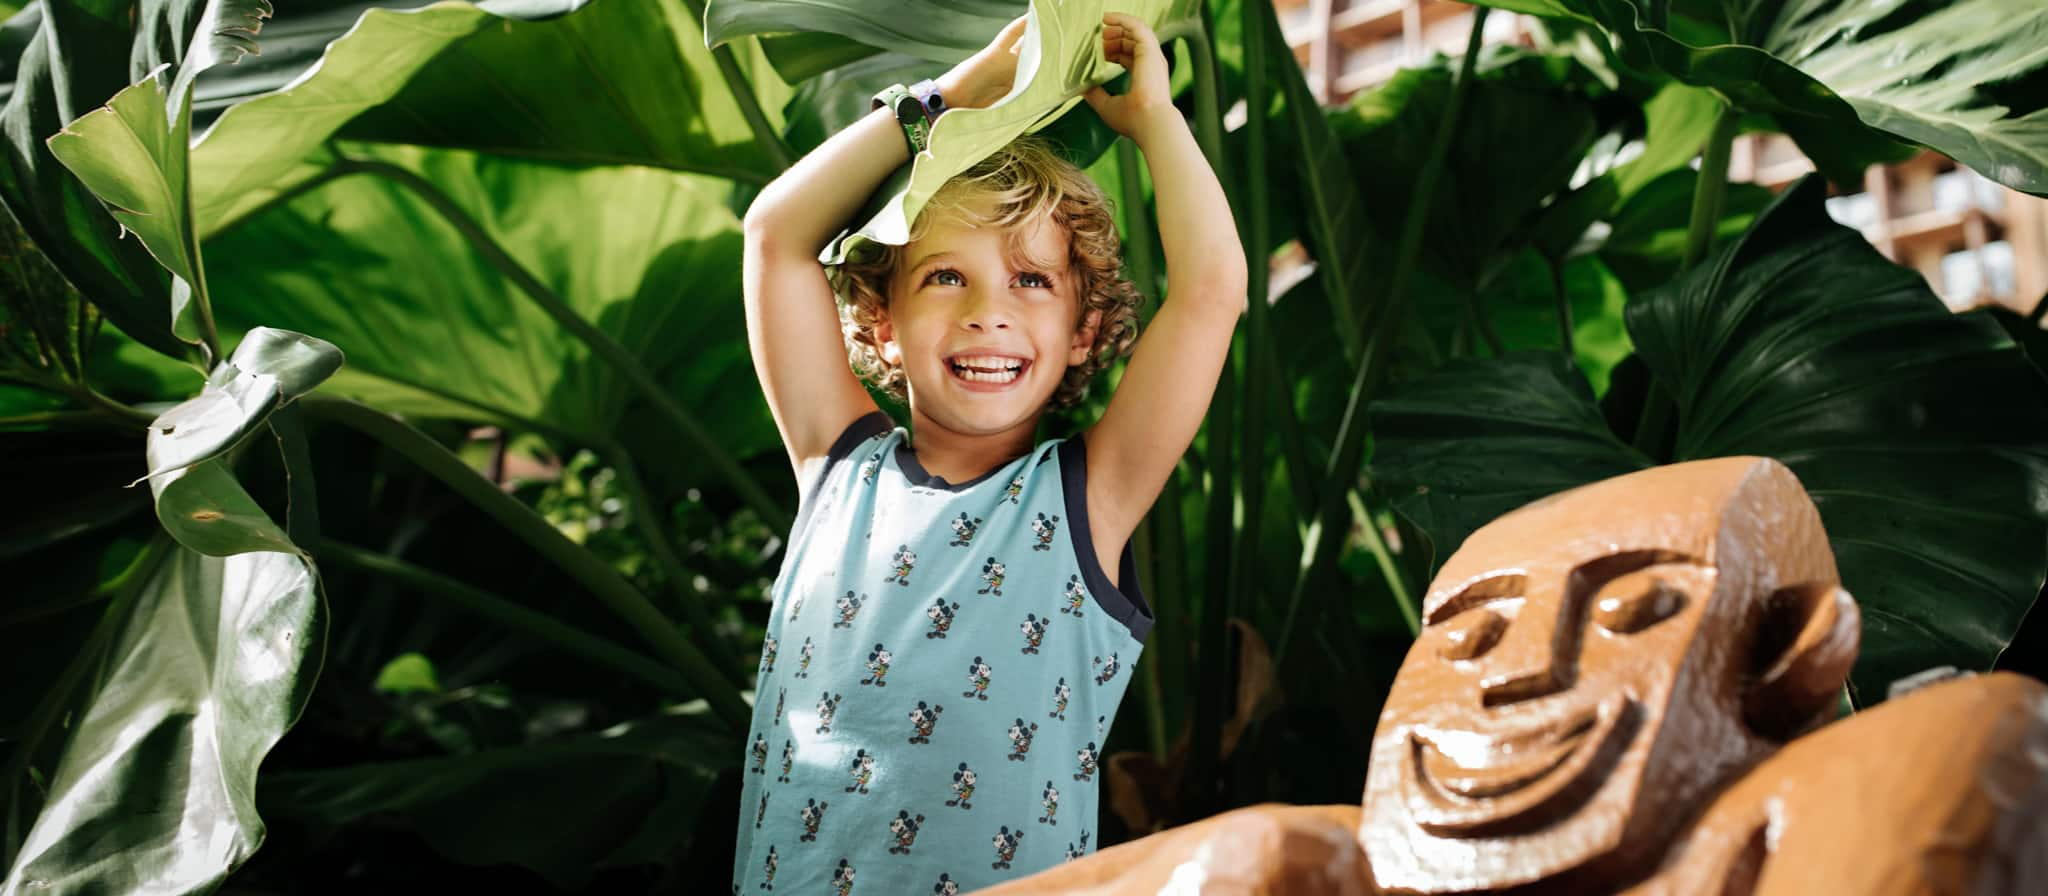 A smiling toddler, standing next to a menehune statue, pulls a large taro leaf on top of her head